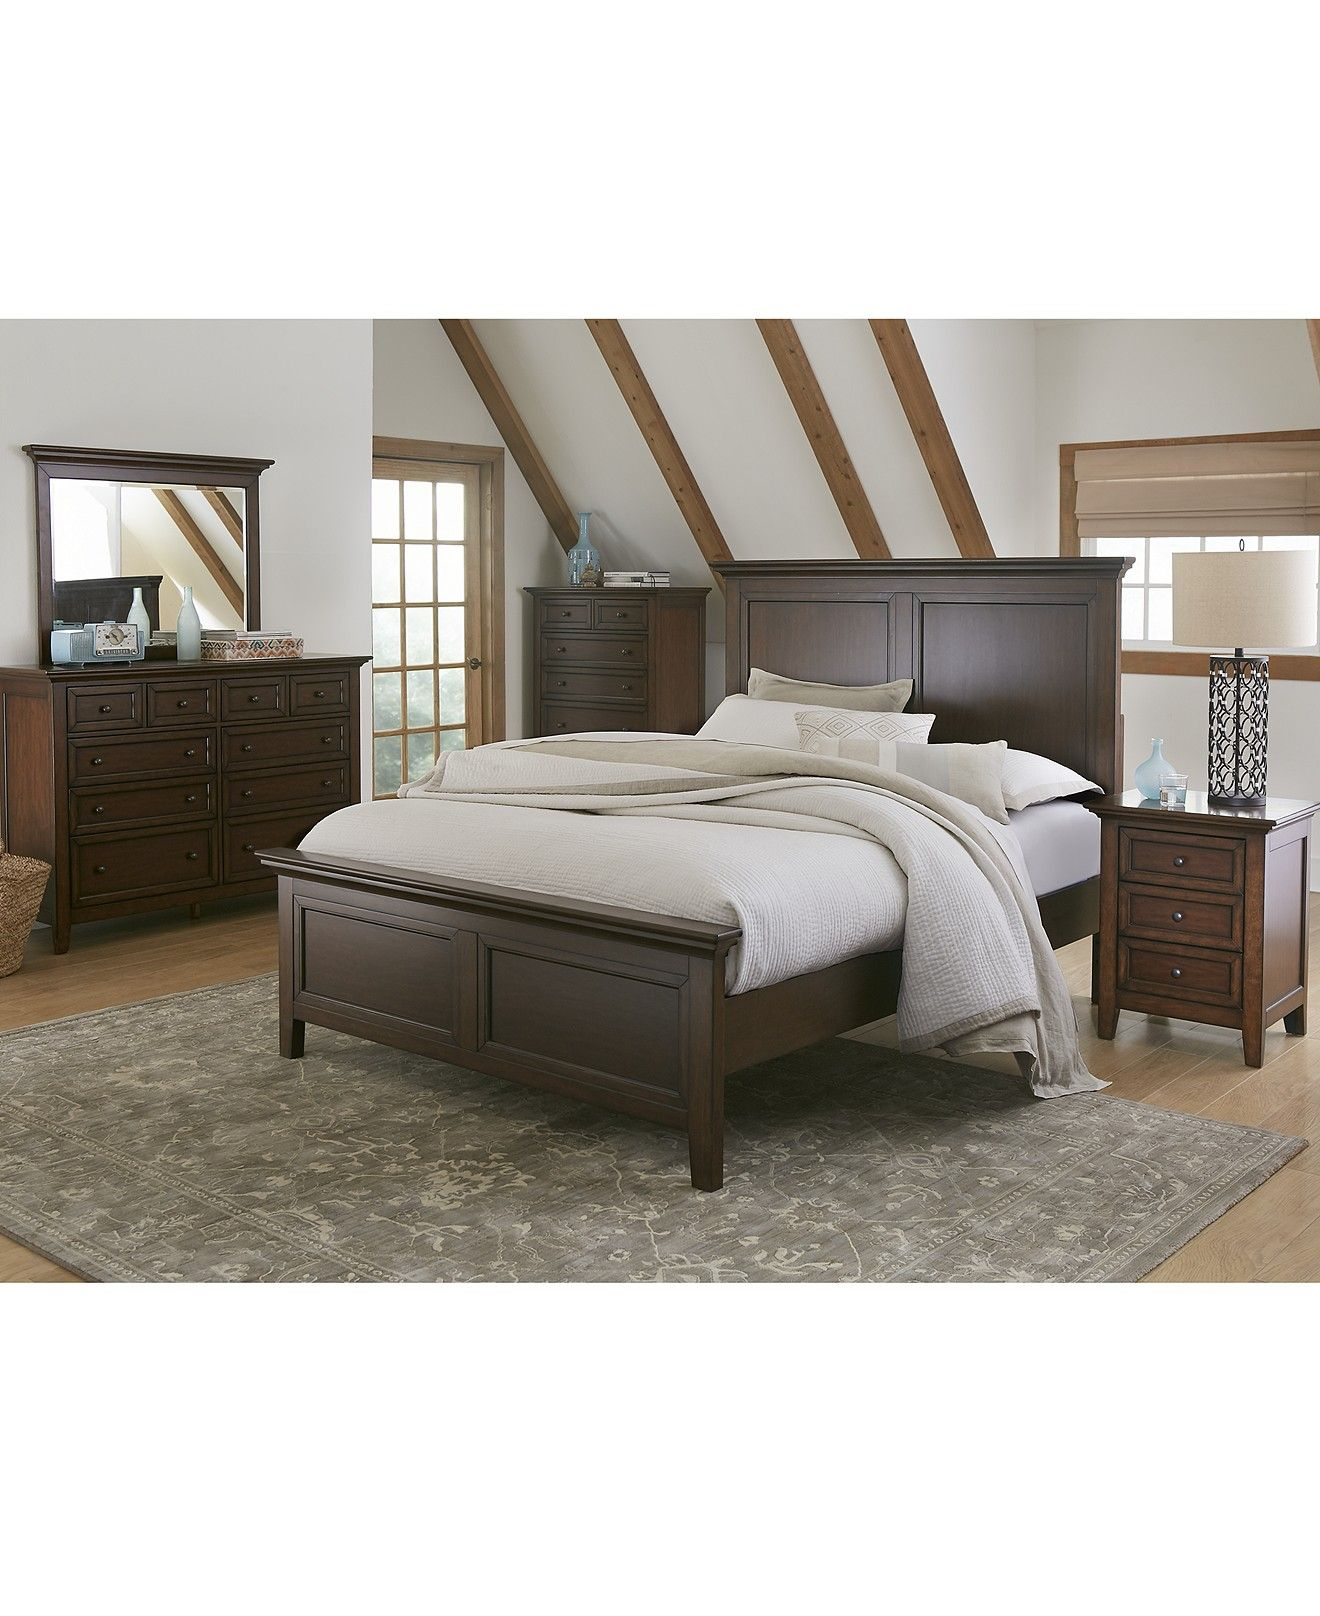 Delmont Bedroom Furniture Collection Only At Macy S Furniture Macy S Bedroom Collections Furniture Bedroom Furniture Macys Bedroom Furniture